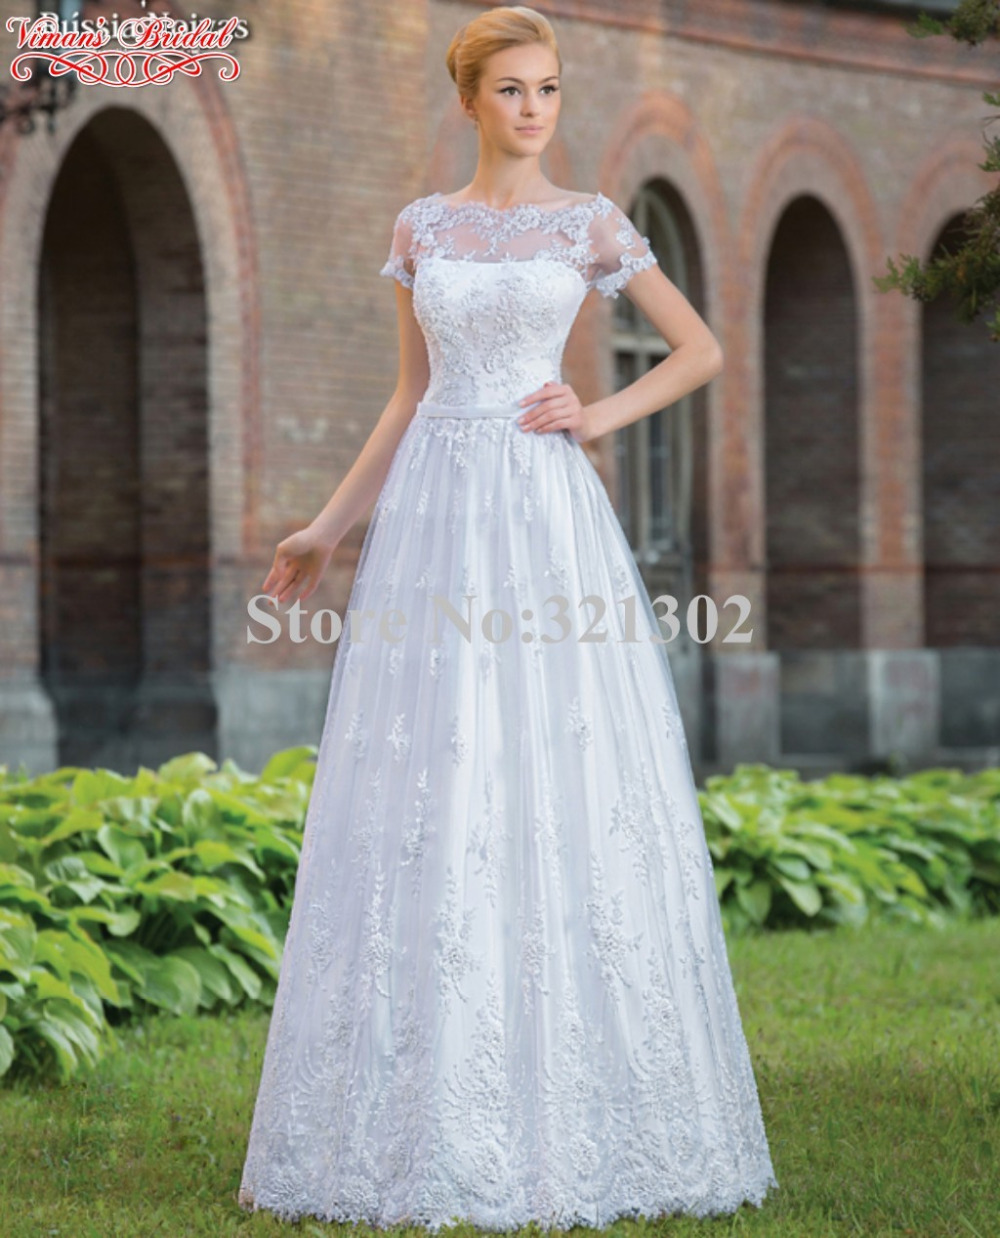 Viman 39 s bridal 2015 hot sale wedding dress appliques lace for Wedding dresses with sleeves for sale